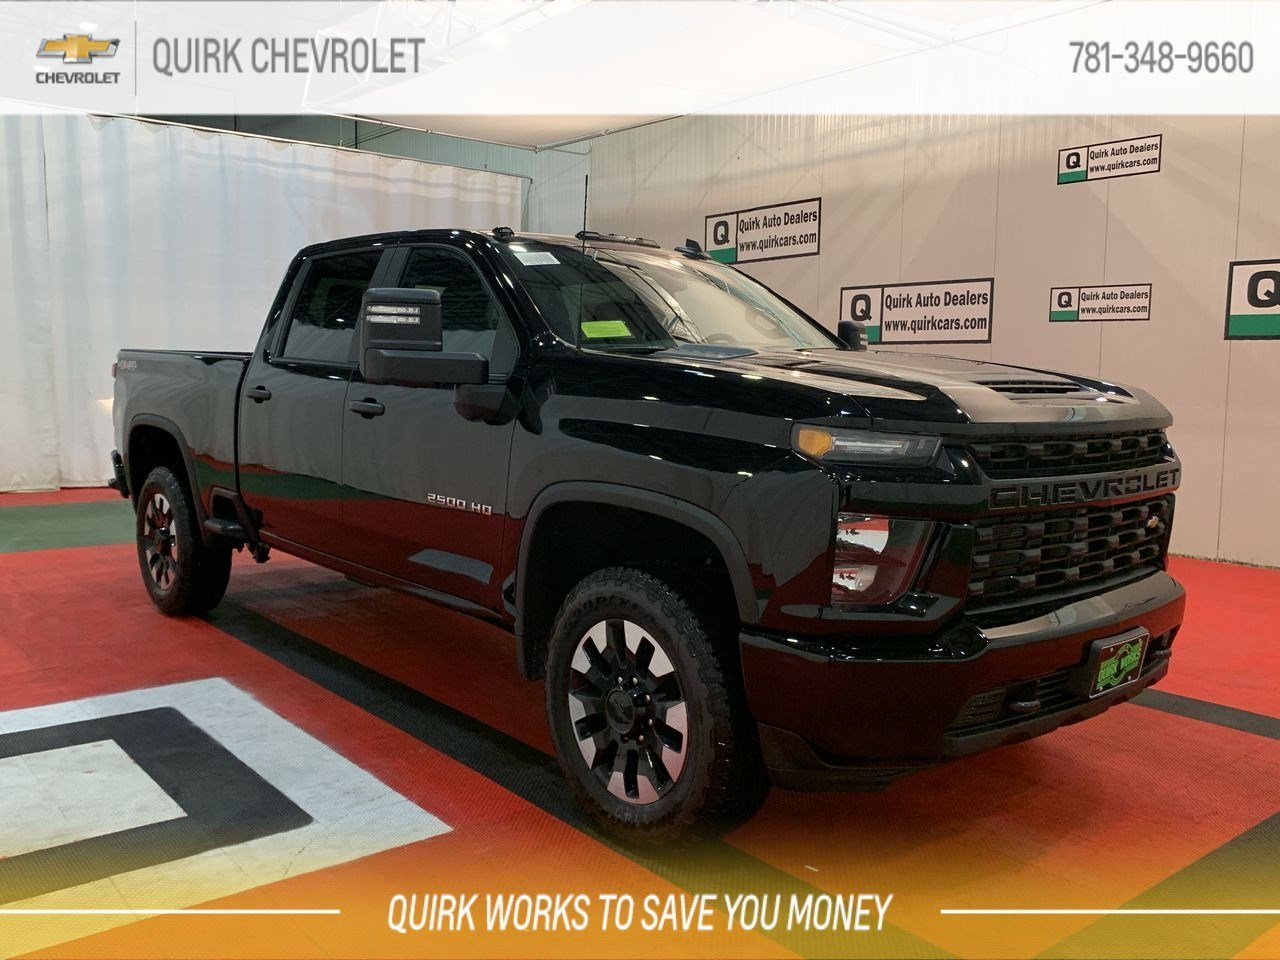 Usaa Discount Quirk Chevy In Braintree